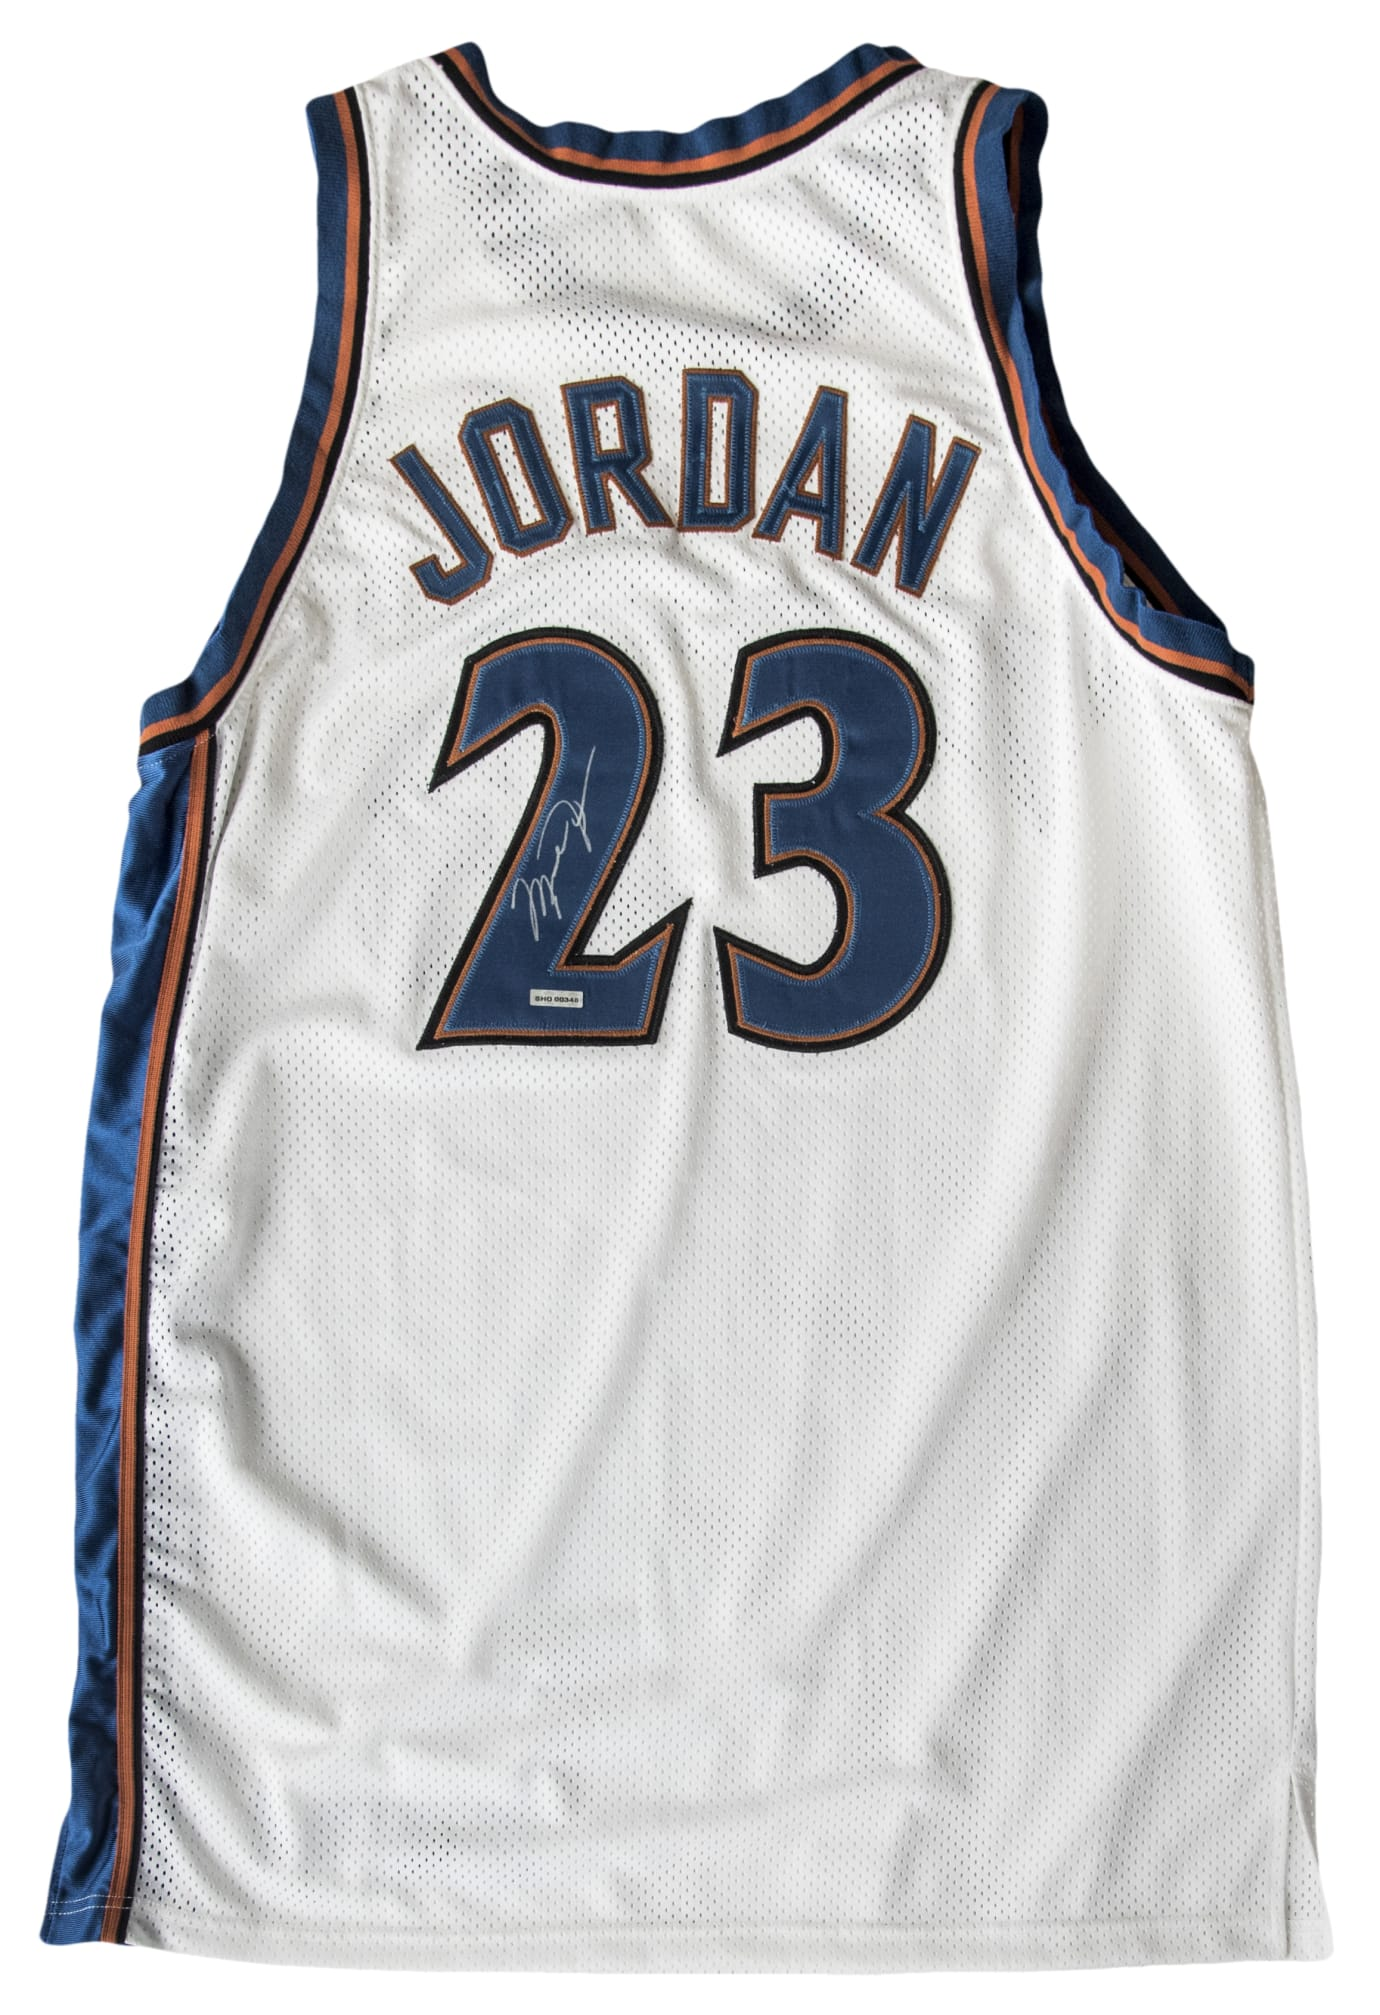 detailed look b3a5f b5db0 Why Someone Paid $50,000 for Michael Jordan's Wizards Jersey ...